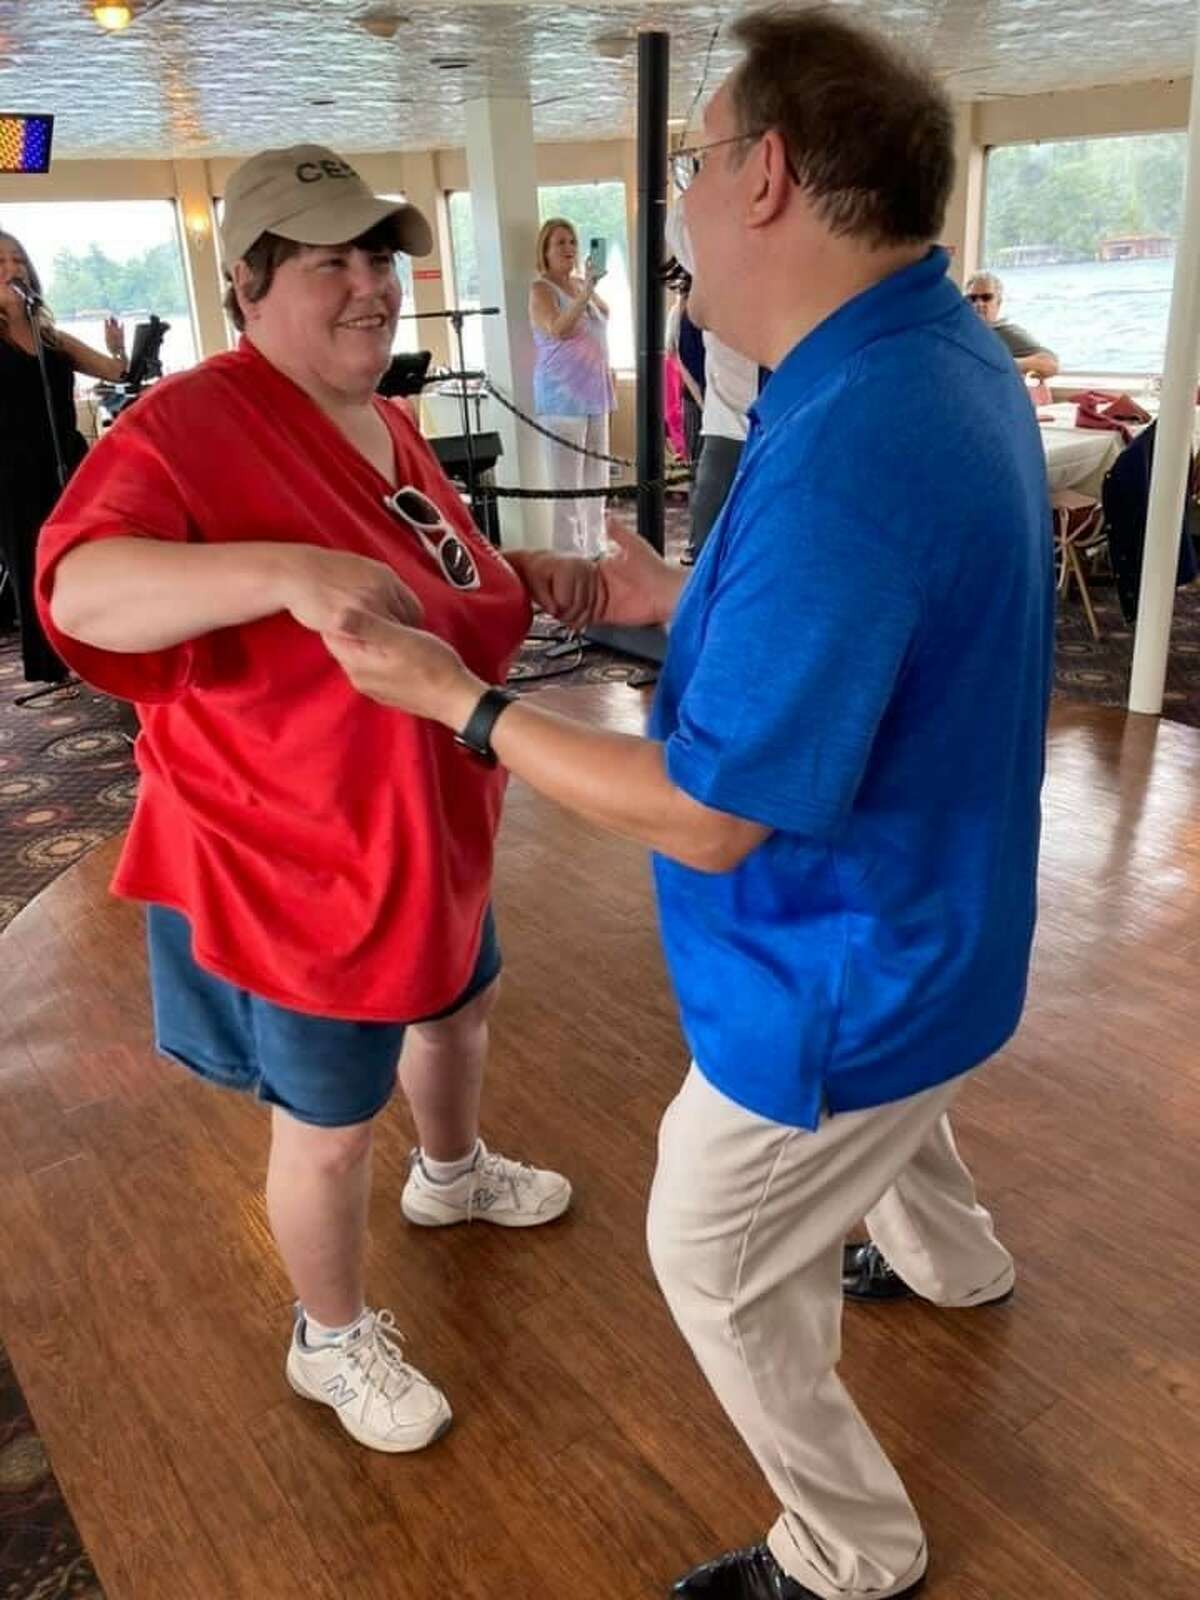 Our House member Kathleen Schleich dances with a dance studio student during a group cruise on Lake George. The social group for disabled adults in Clifton Park has changed members' lives.